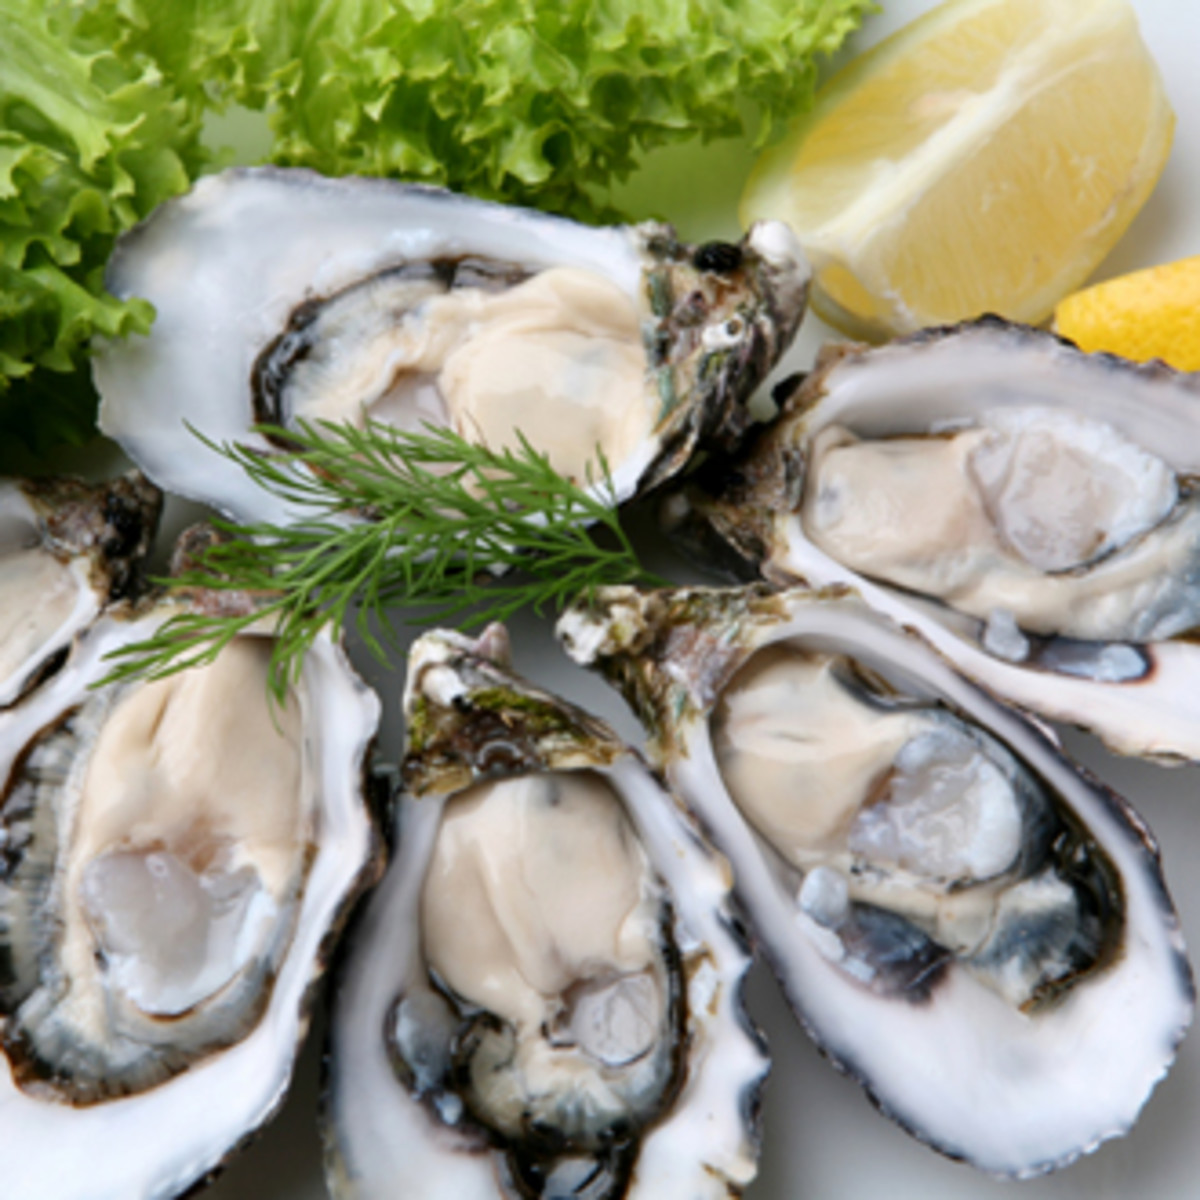 Causes and Symptoms of A Shellfish Allergy